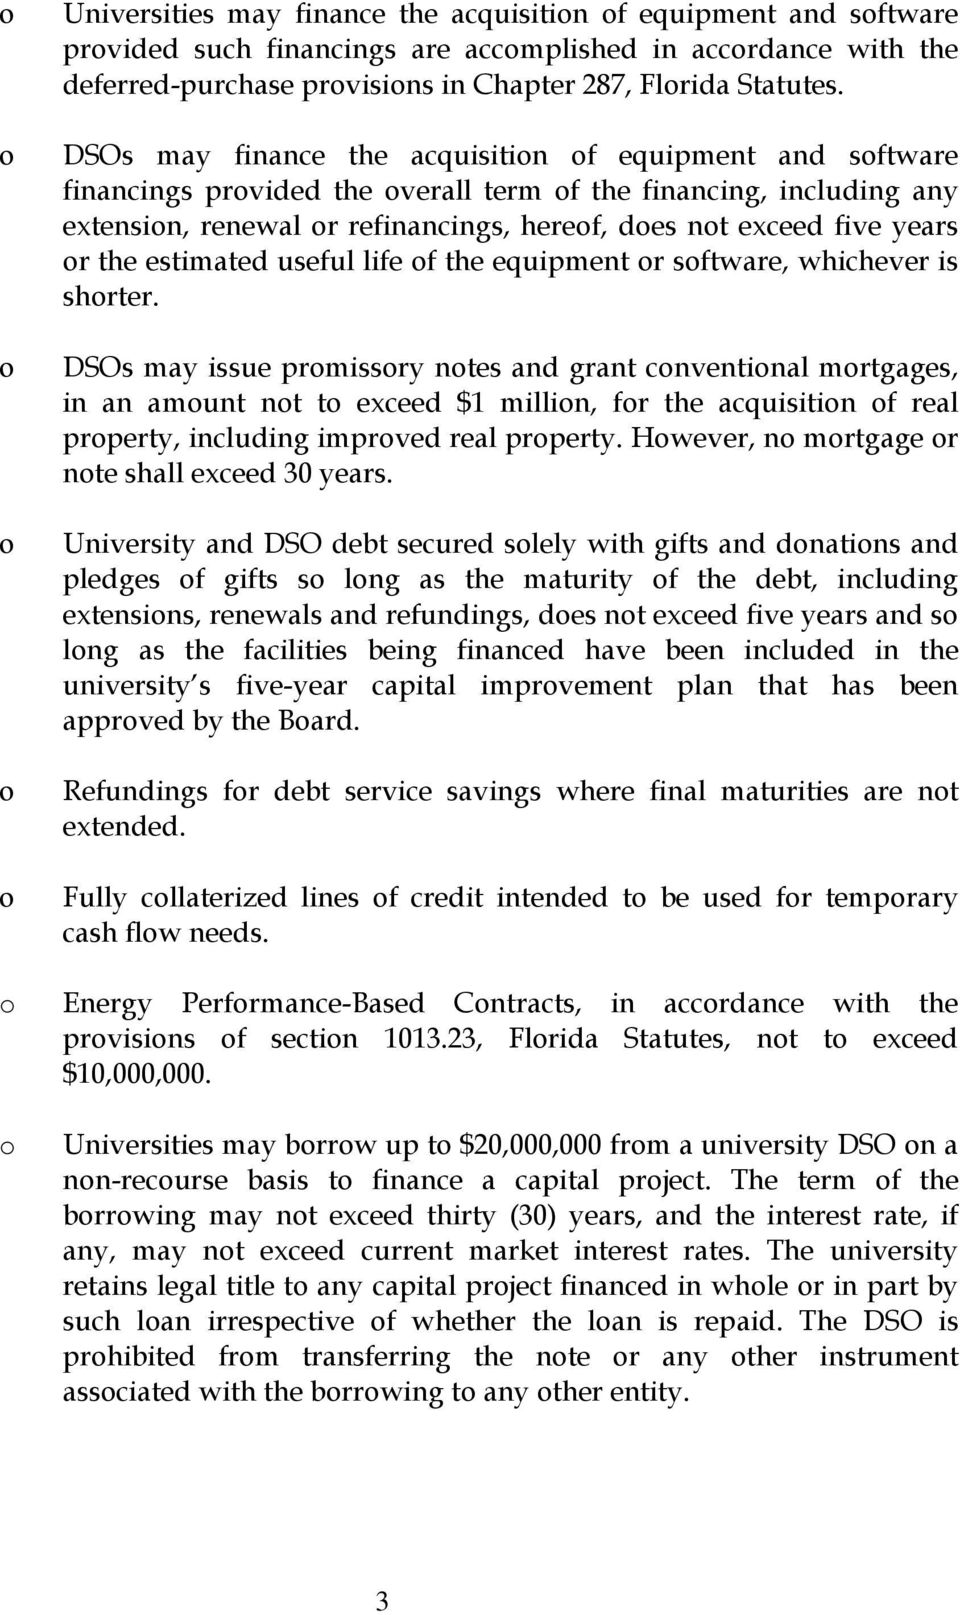 DSOs may finance the acquisition of equipment and software financings provided the overall term of the financing, including any extension, renewal or refinancings, hereof, does not exceed five years